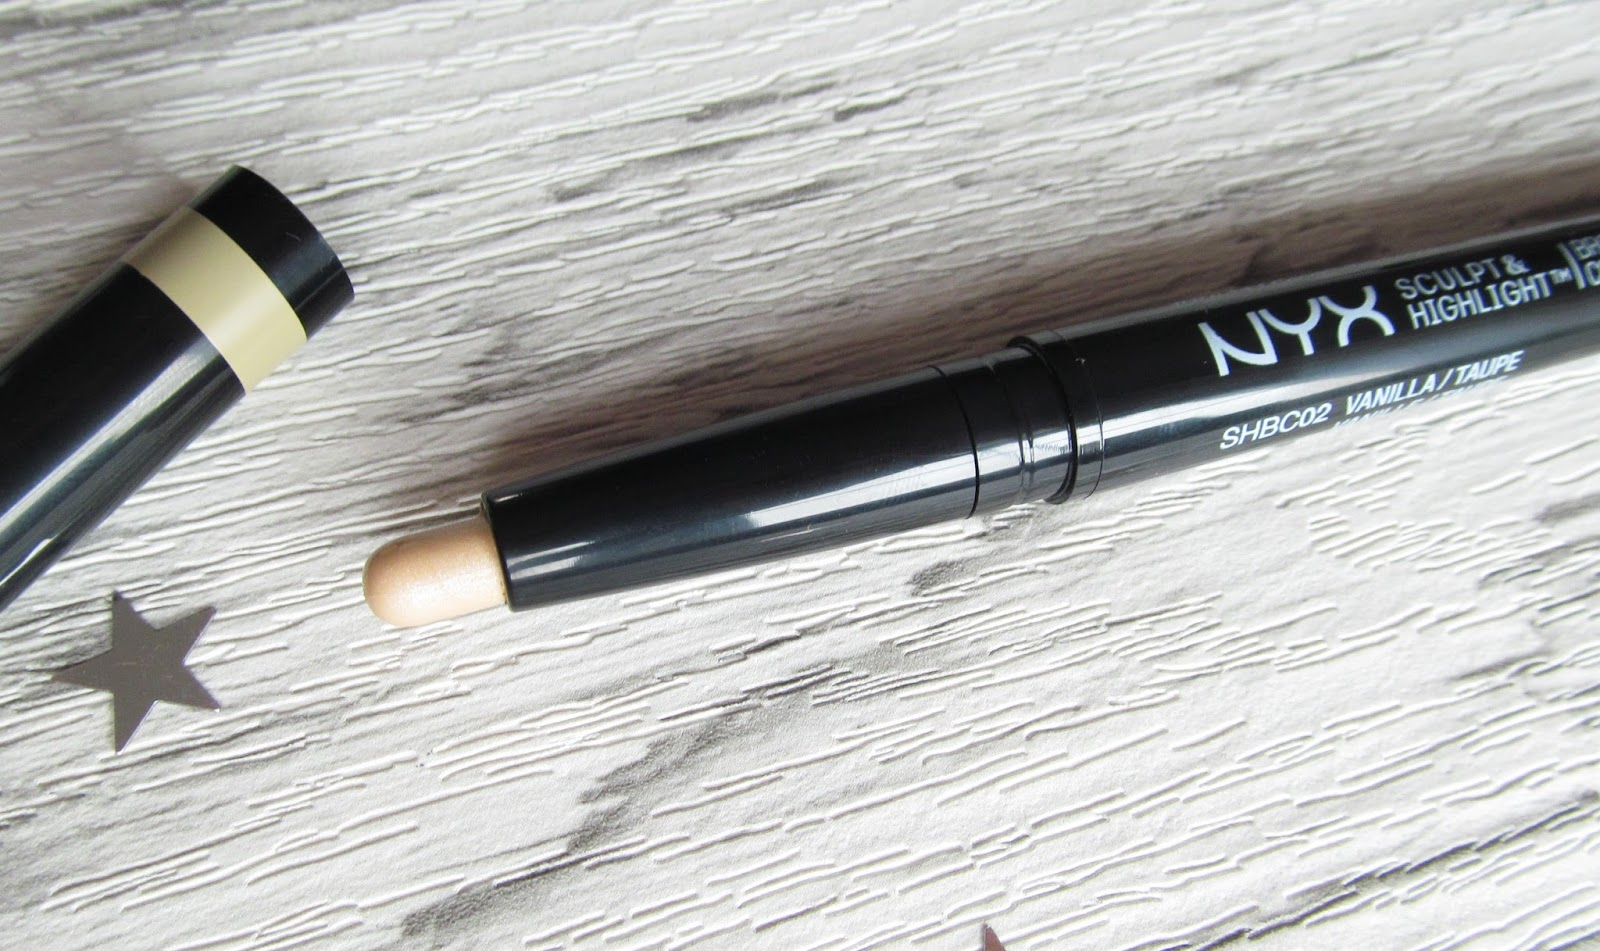 NYX sculpt and highlight review